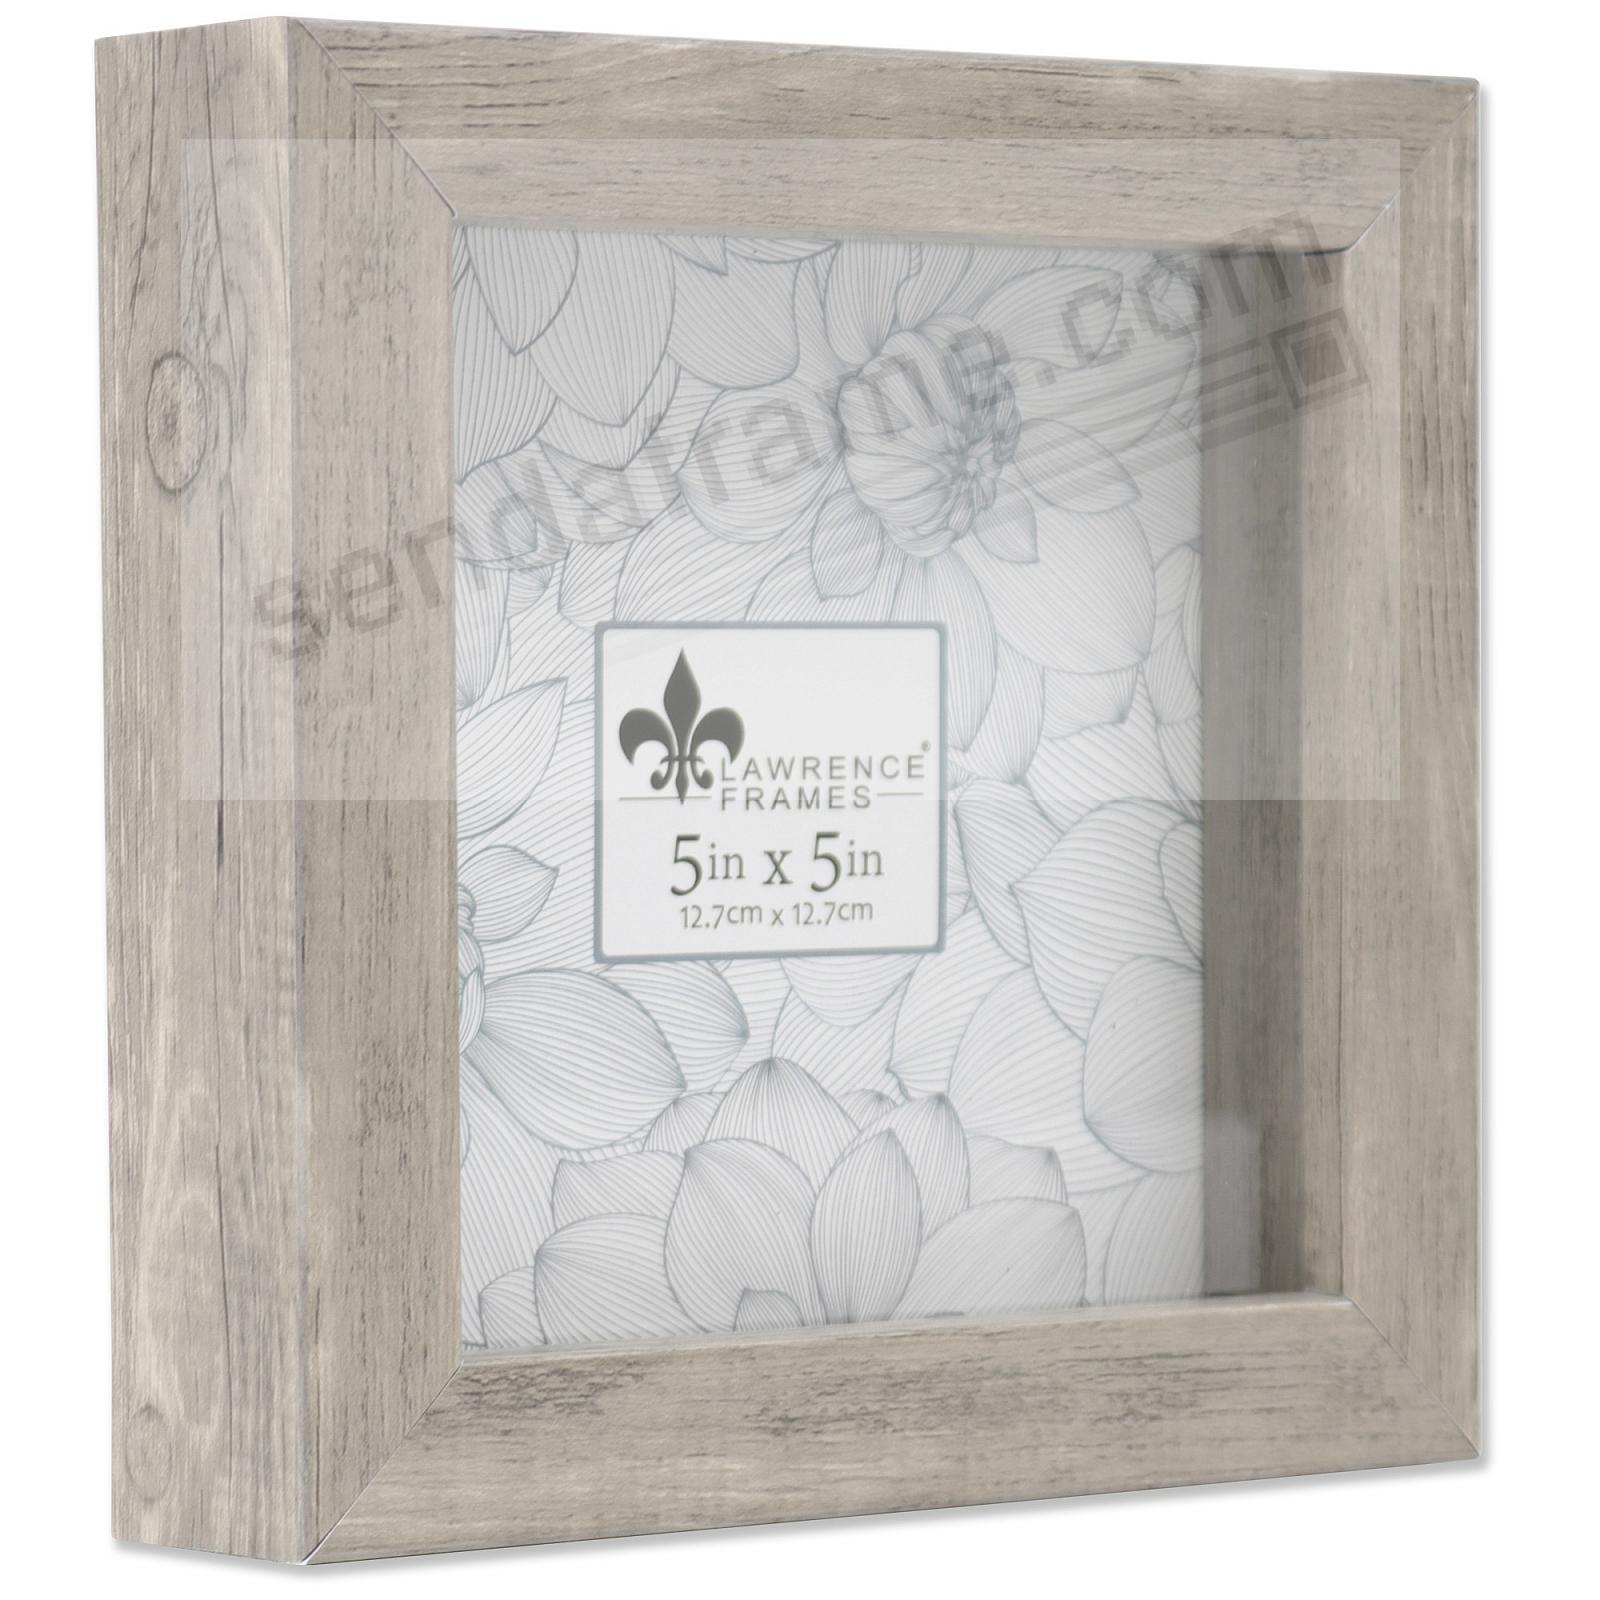 WEATHERED GRAY Trinket Box 5x5 frame ¾in depth by Lawrence®